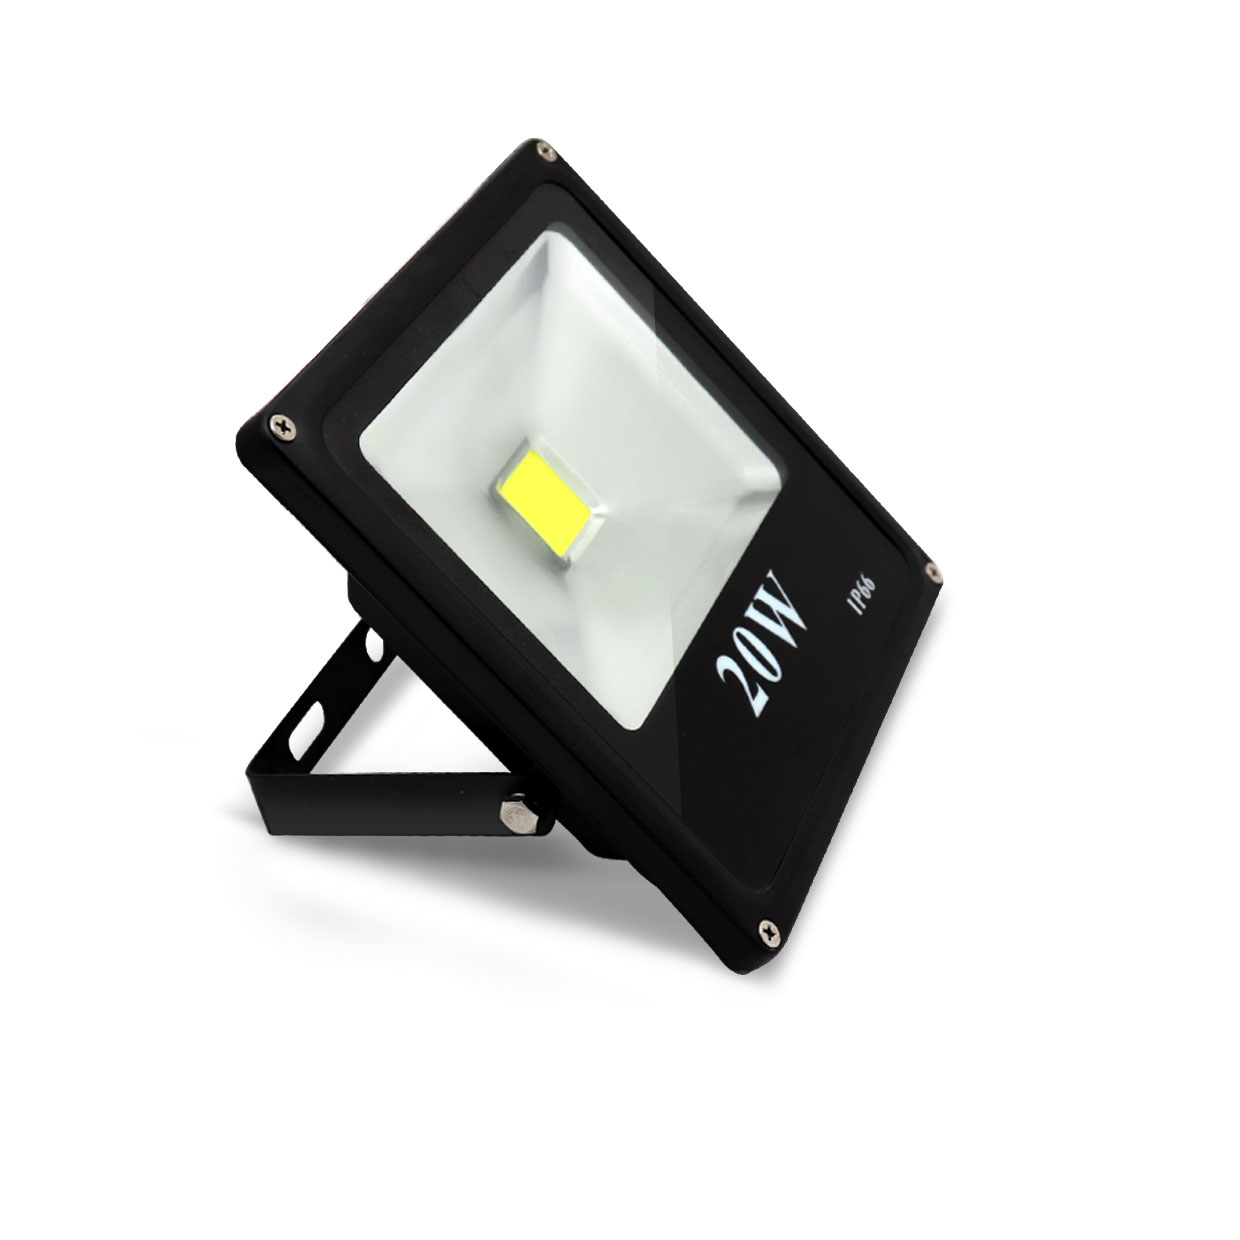 200w led flood light outside outdoor supplies home lighting